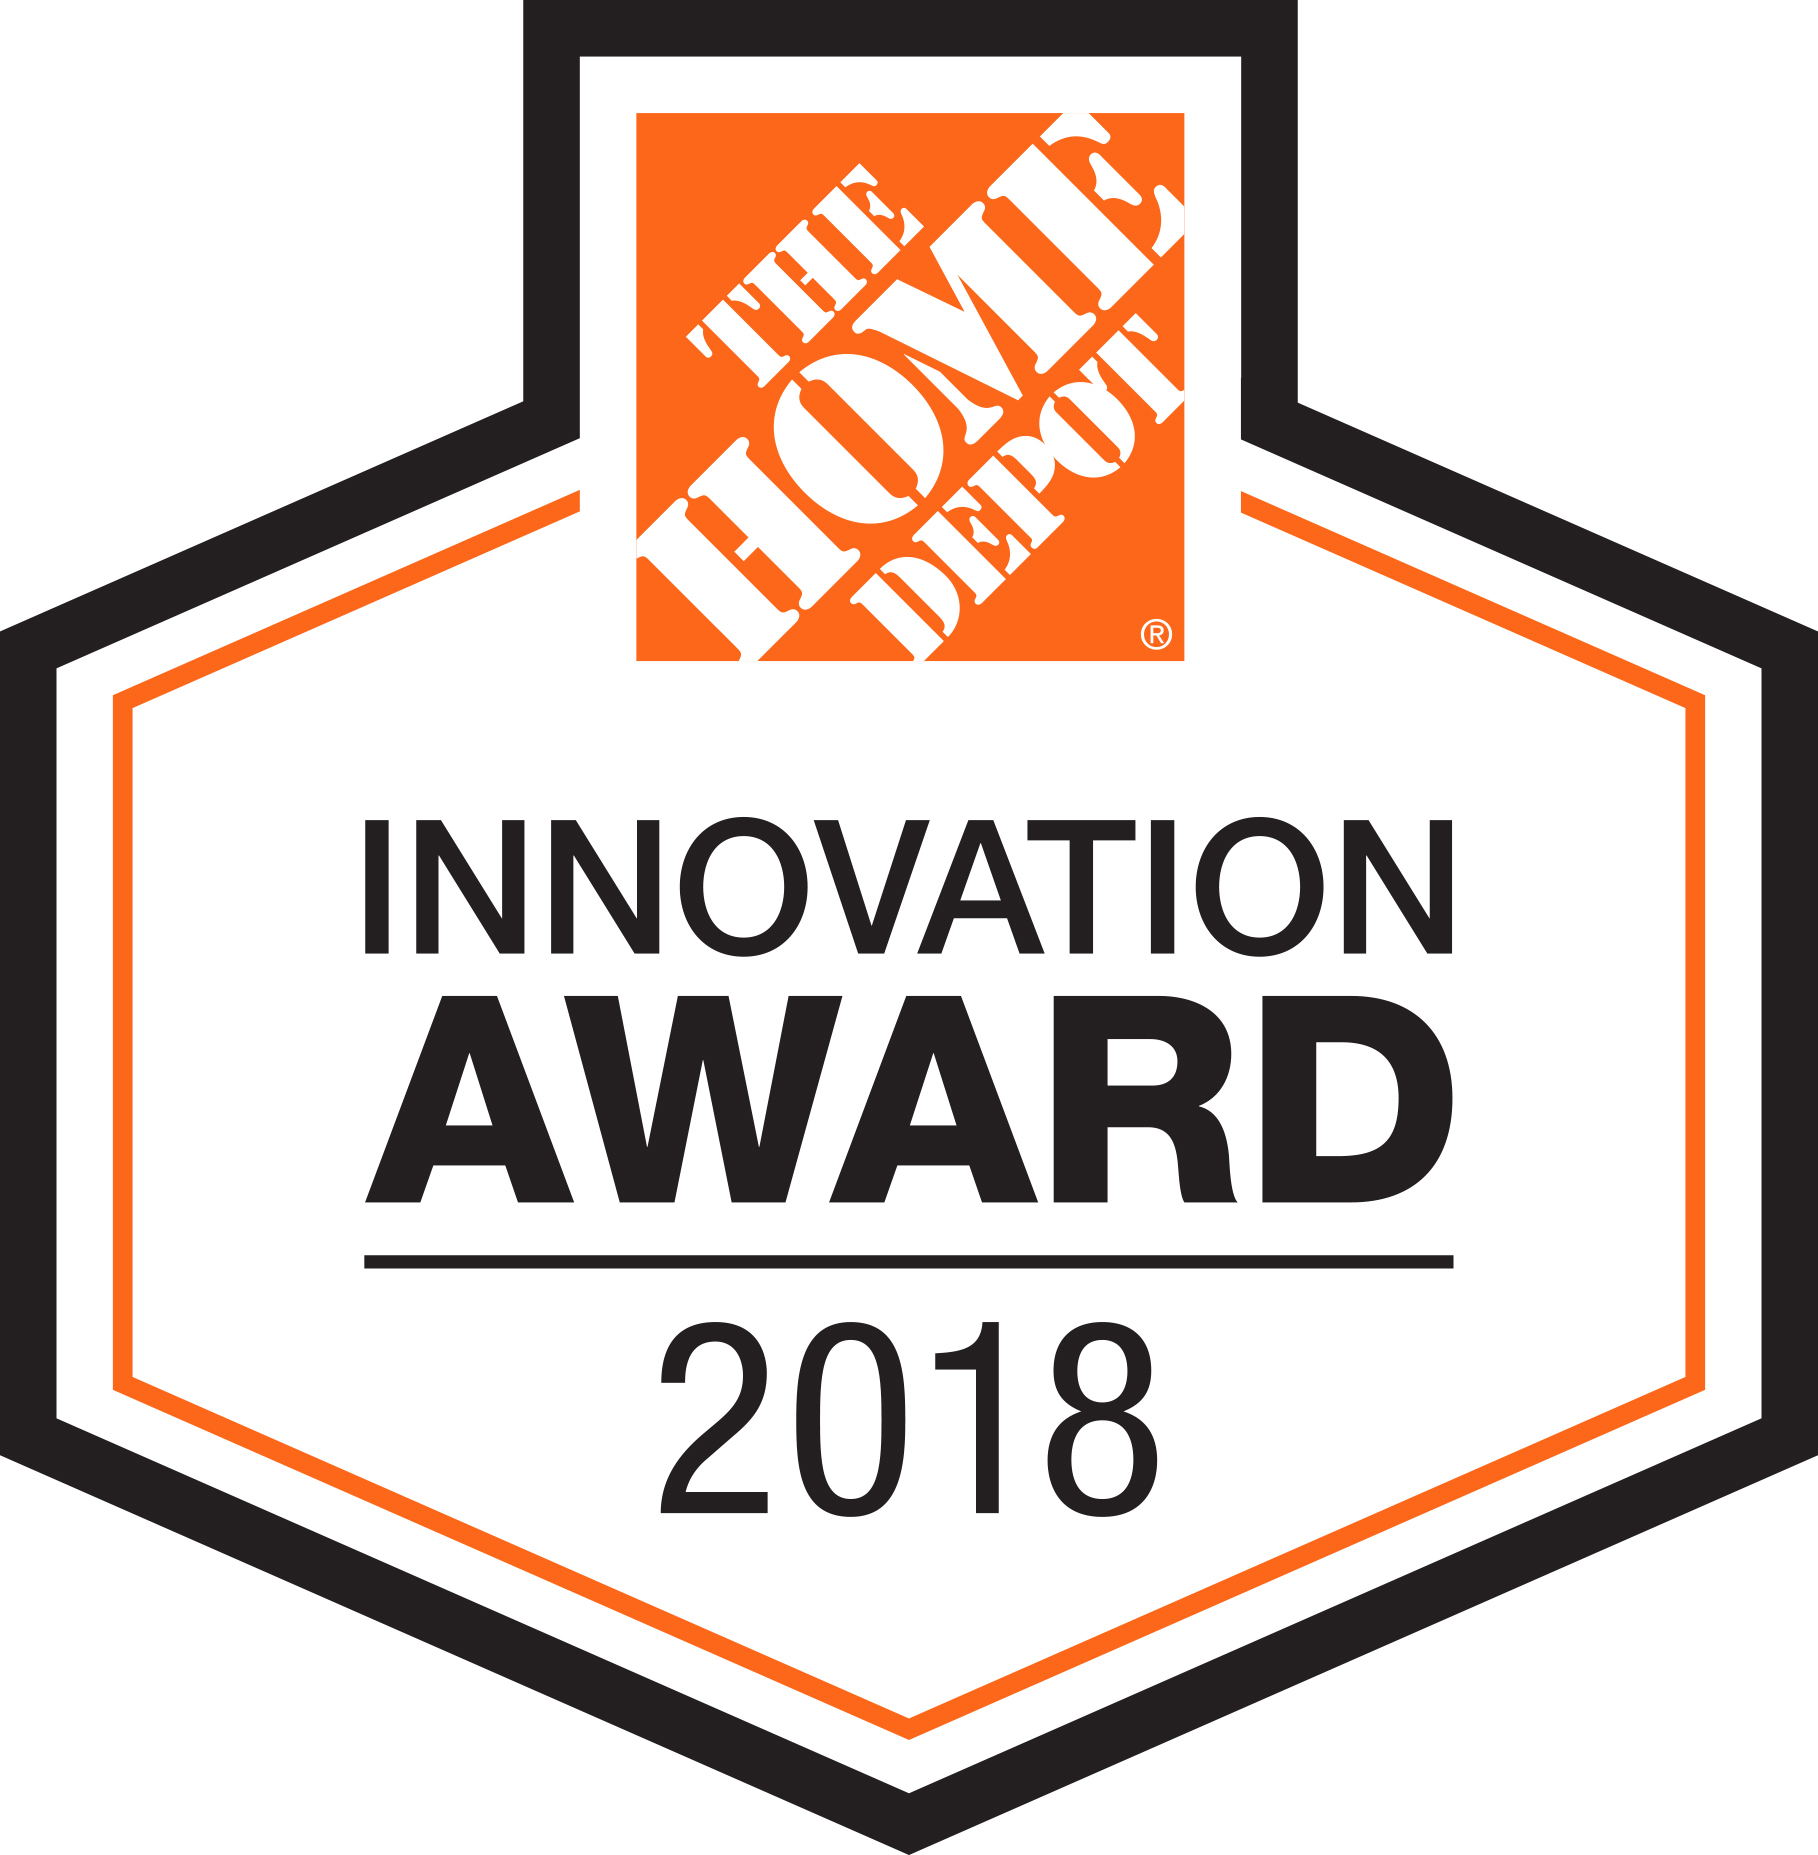 Home Depot Announces 2018 Innovation Award Winners Builder Furnace Ac Wiring Magazine Awards Cordless Tools And Equipment Lighting Tile Wood